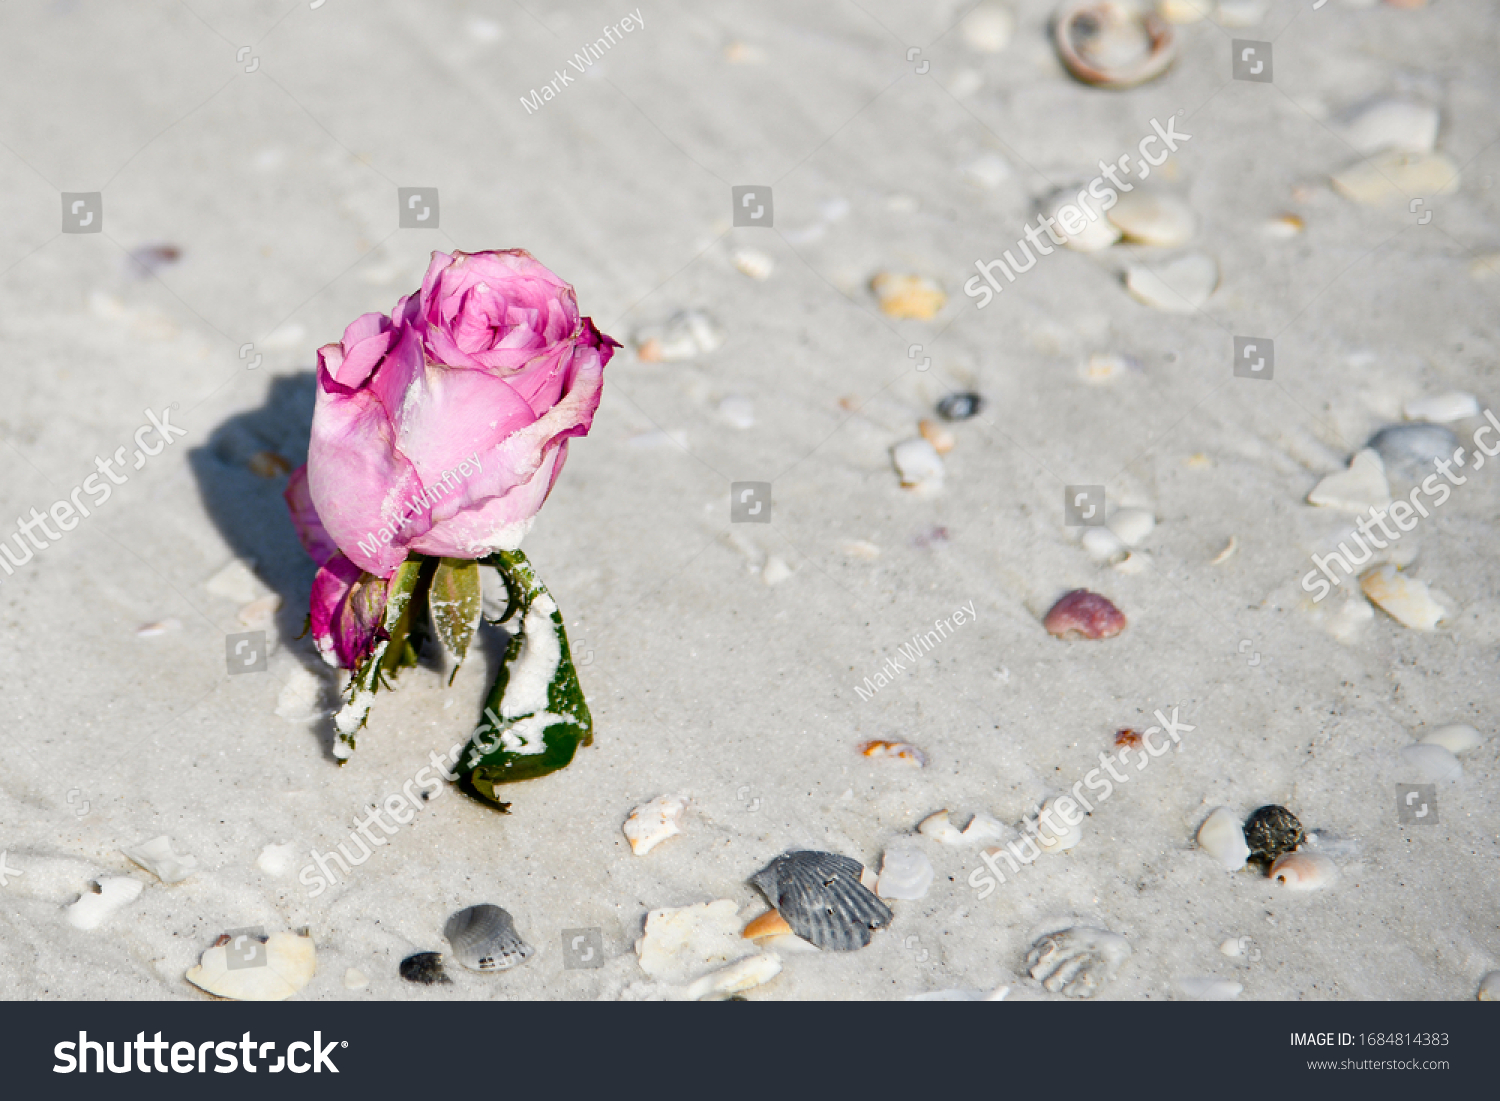 A Single Pink Rose Laying on a Sandy Beach with Sea Shells around it